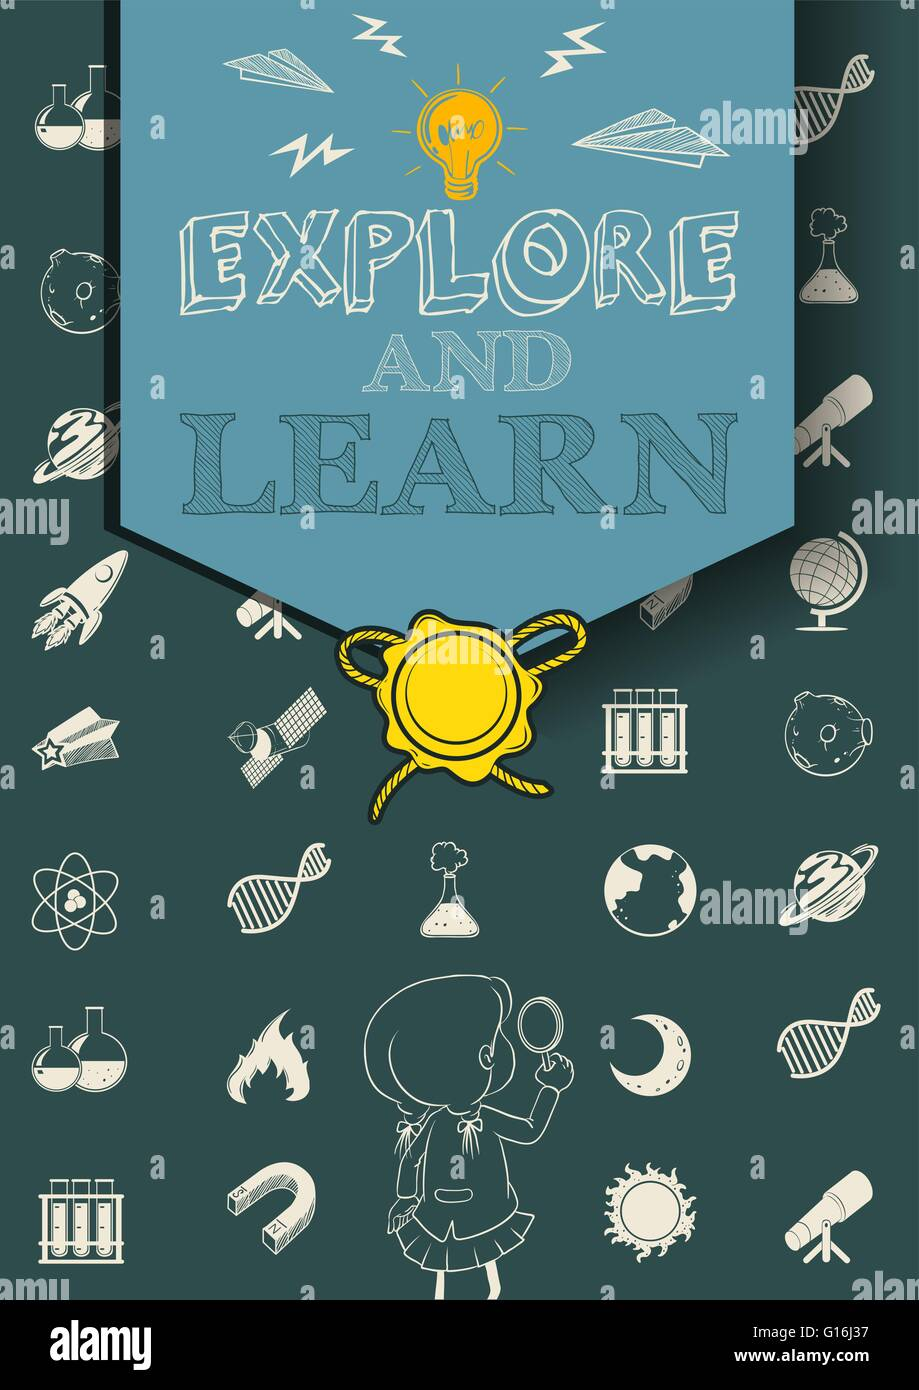 Educational poster with science symbols illustration - Stock Image